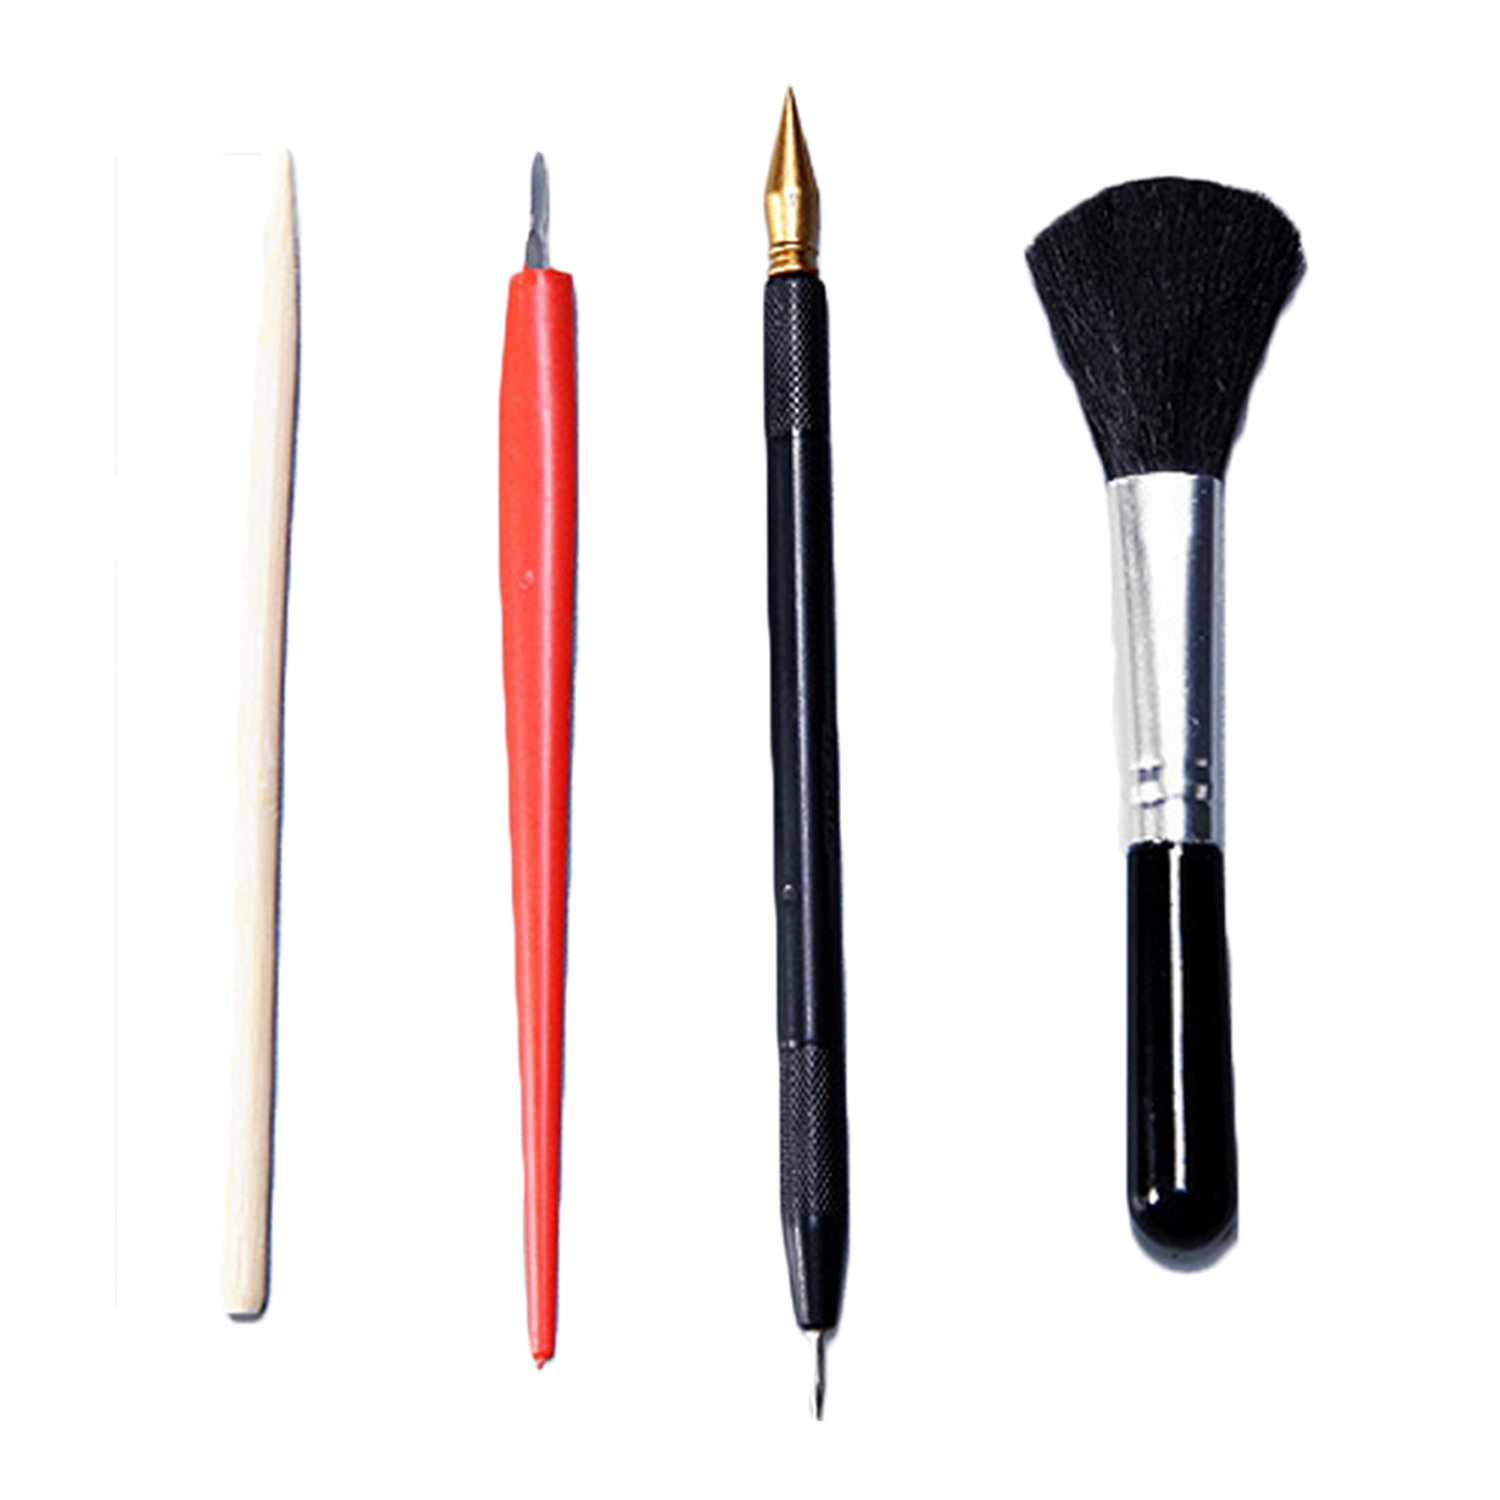 Scratch Tools, Migavenn Scratch Art Design Tools Scratch Arts Set with Stick Scraper Pen Black Brush for Scratch Sketch Art Painting Papers Sheets Painting Drawing Boards 4psc Migavan